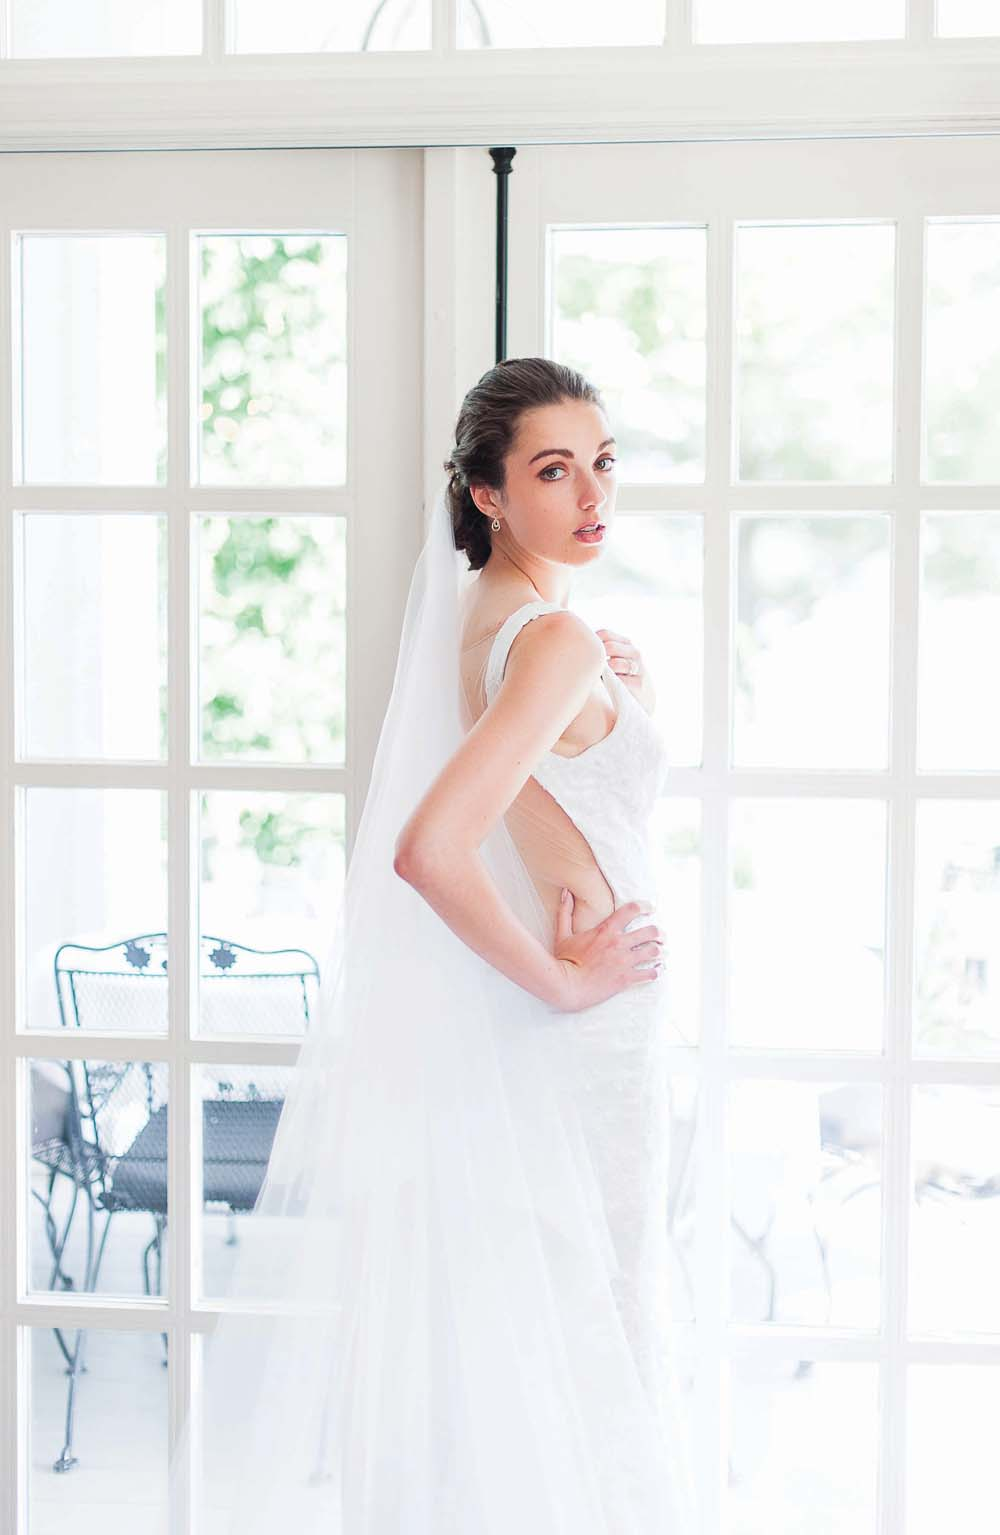 An Ultra Violet-Inspired Styled Shoot In Quebec - Bride